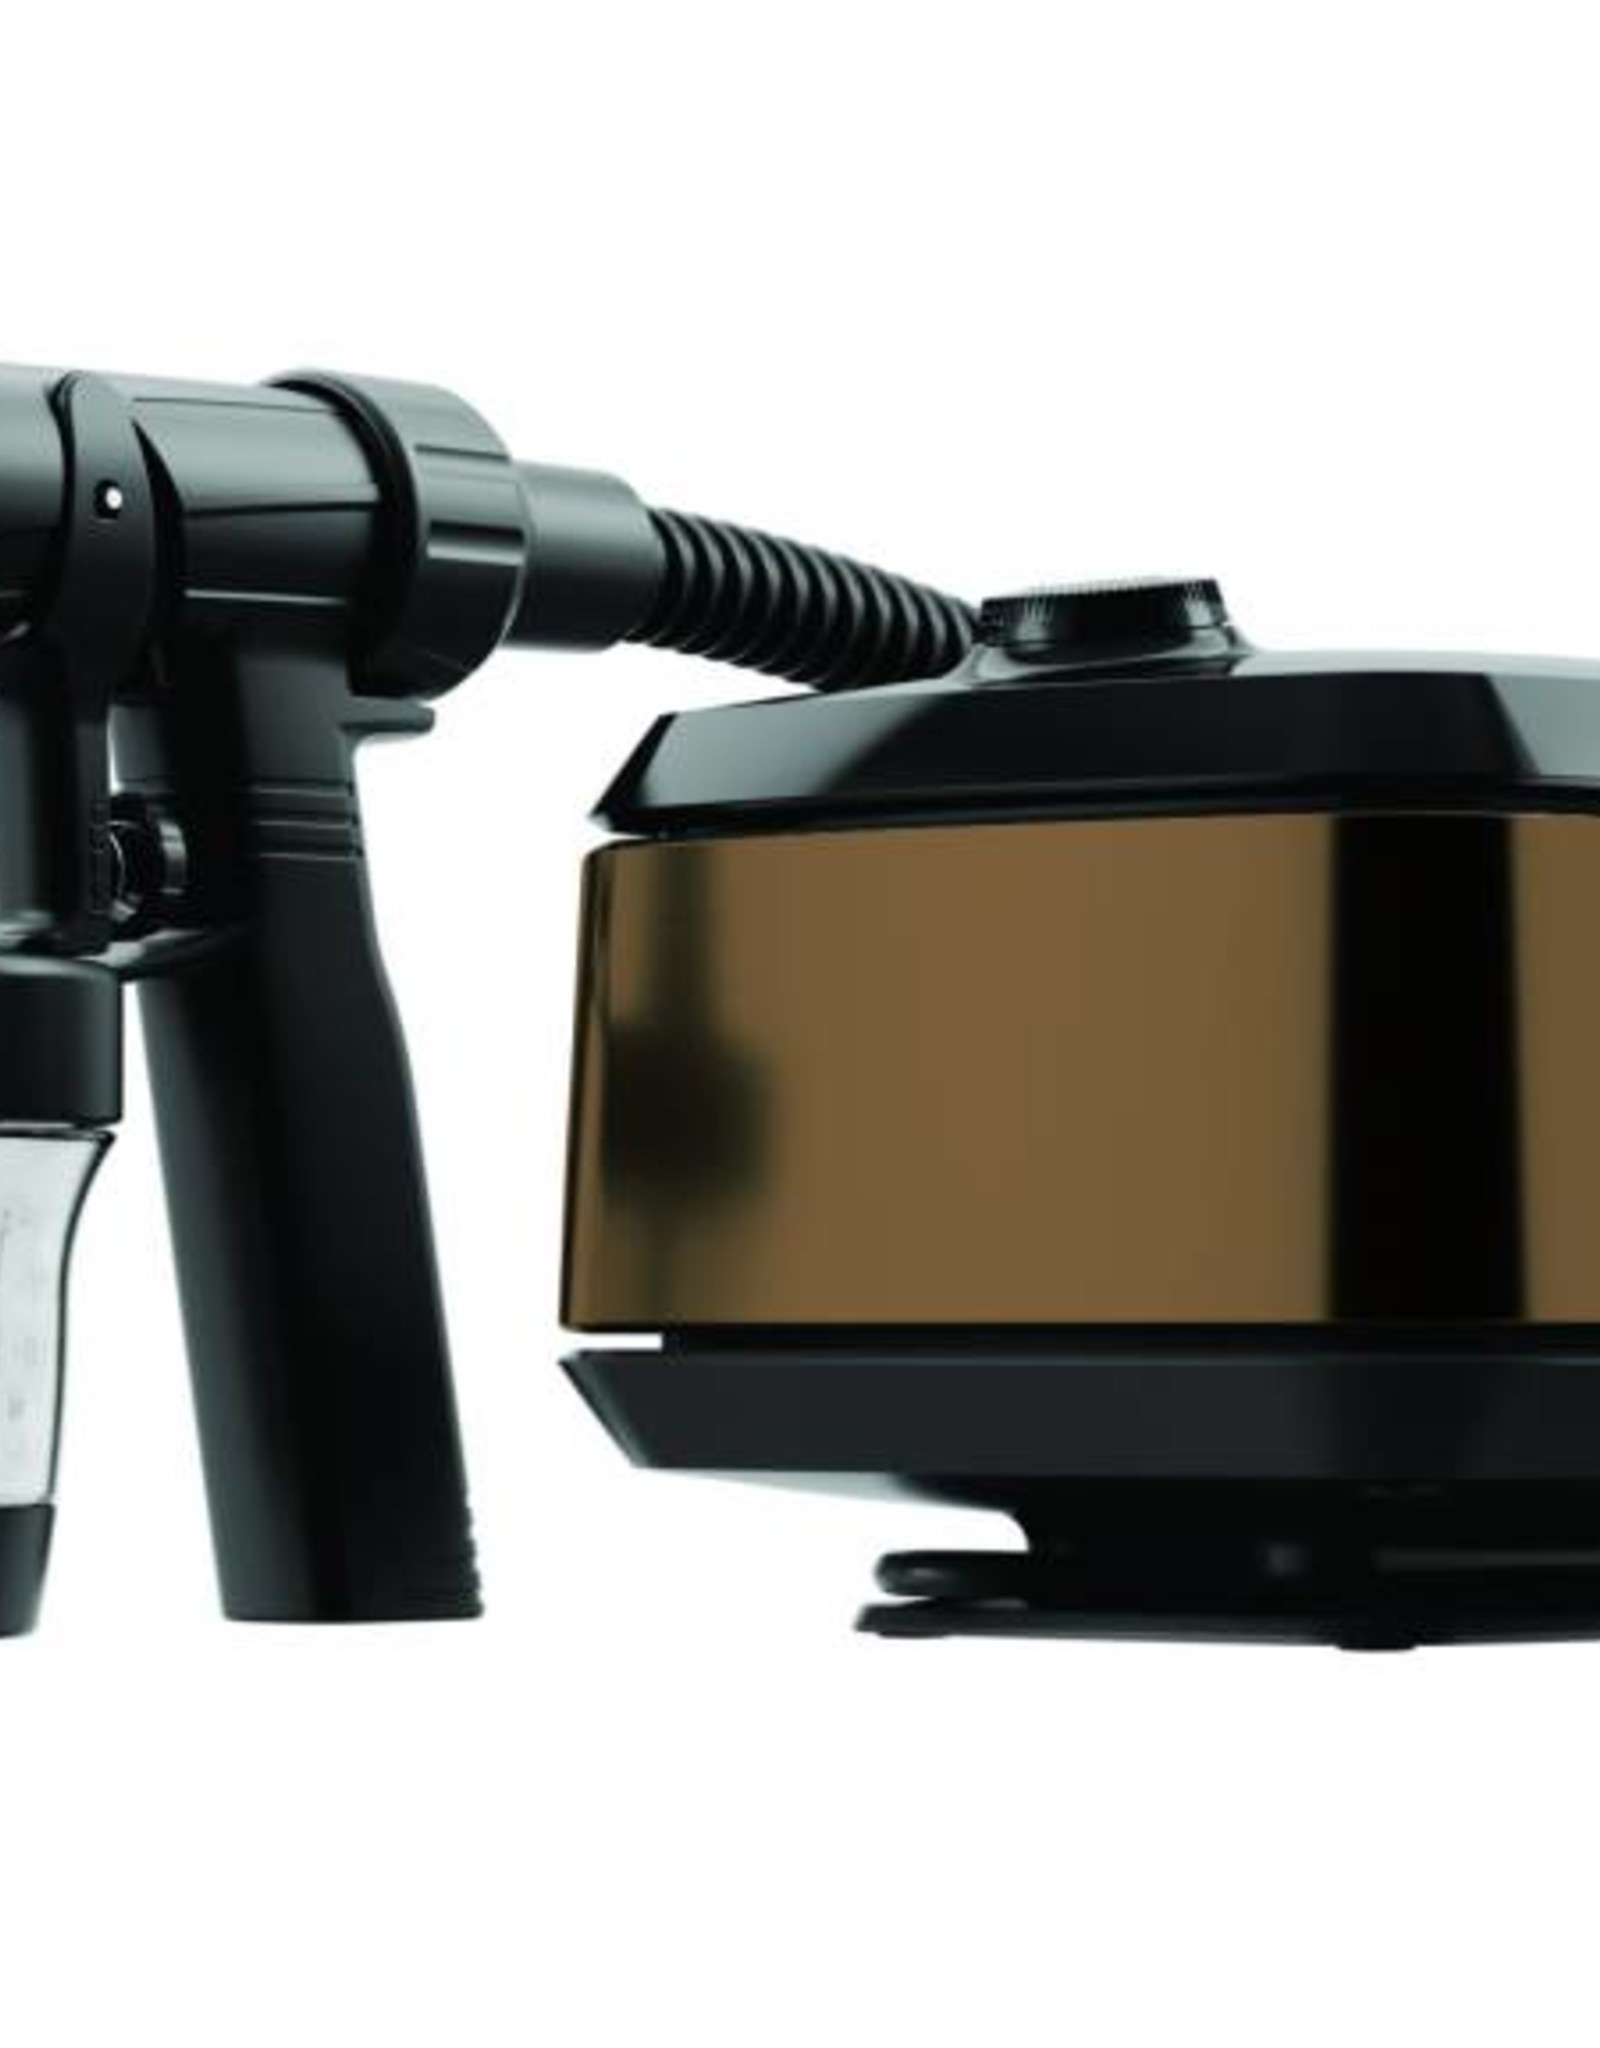 MaxiMist Aura Allure Spray Tan Machine